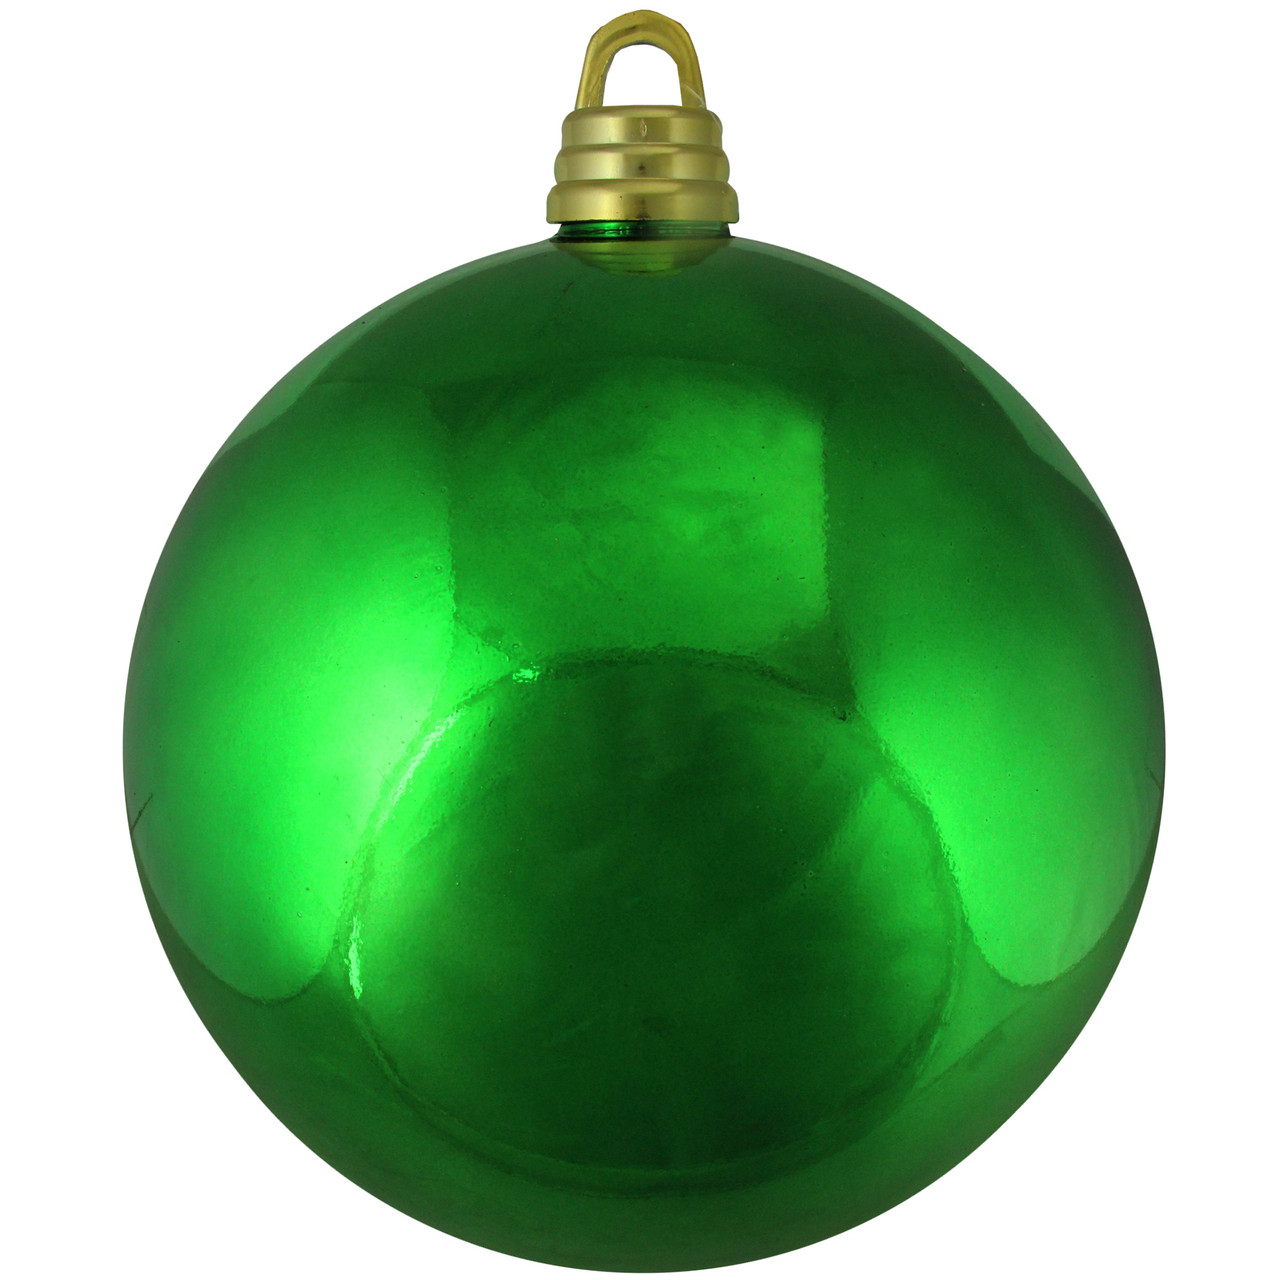 Shatterproof Shiny Xmas Green Christmas Ball Ornament 12 ...